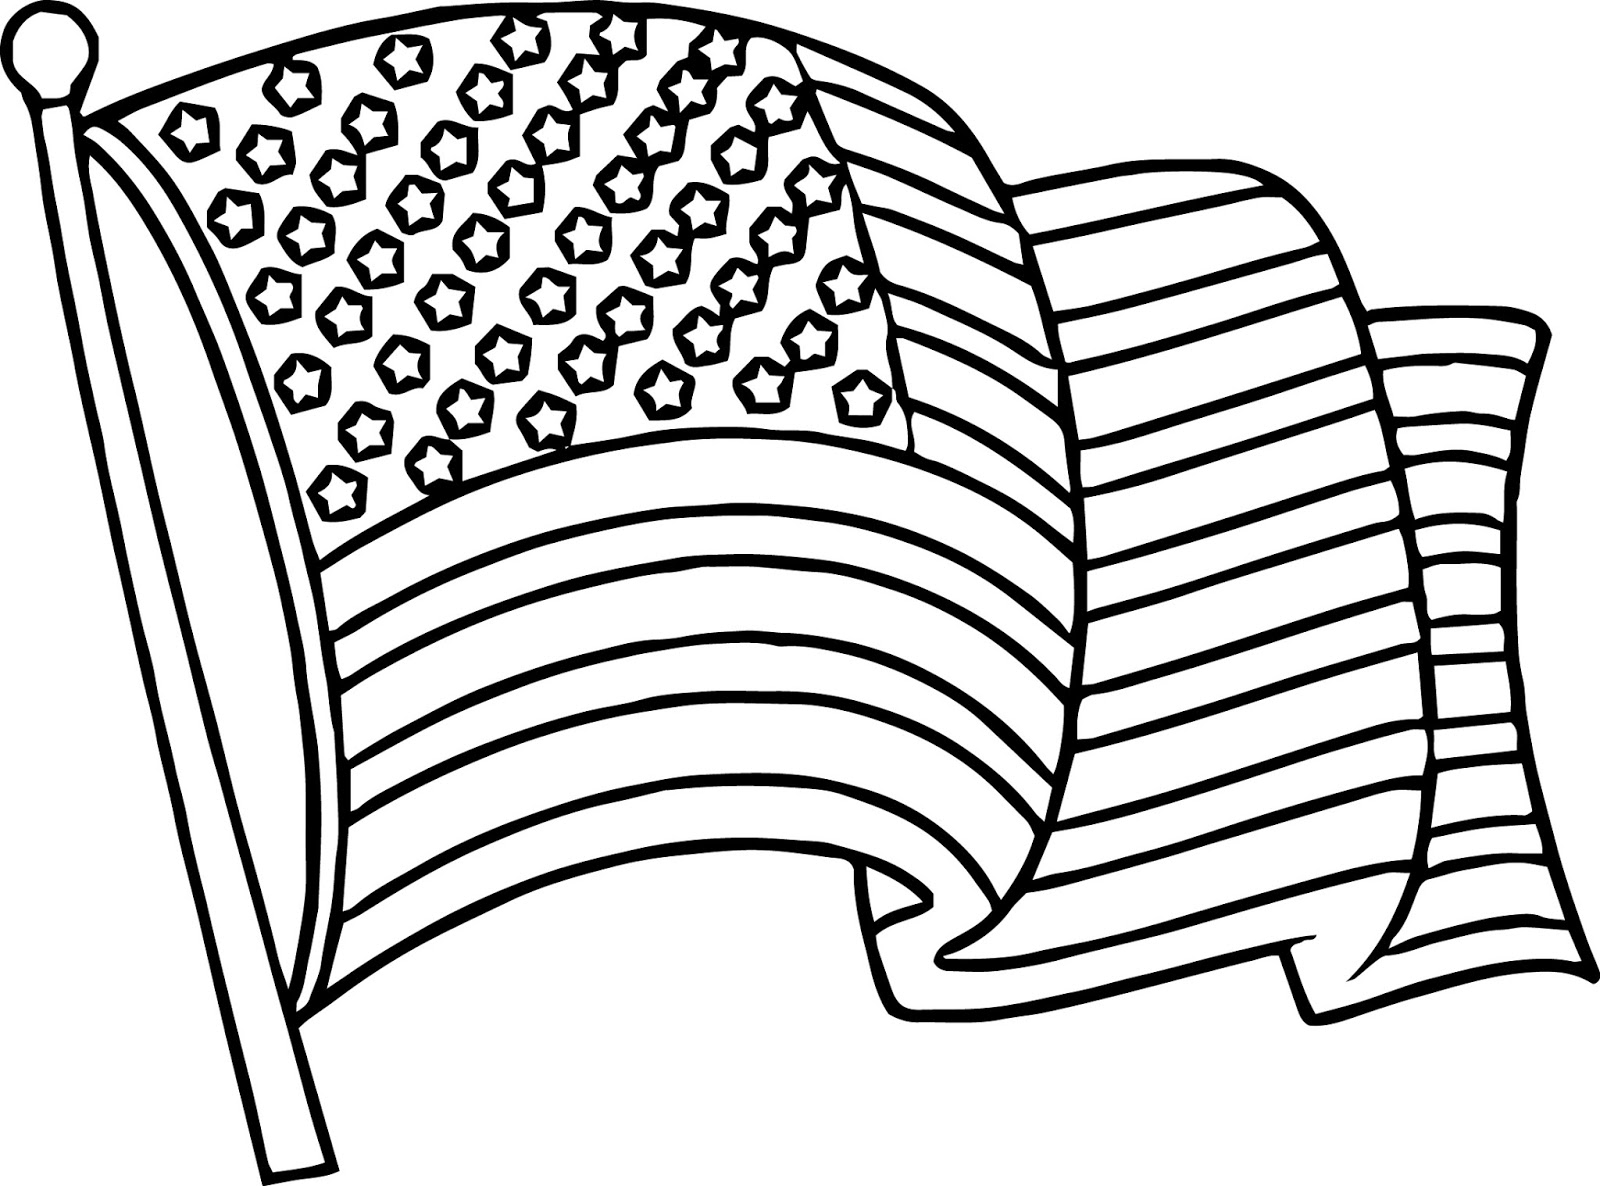 State Flag Of Florida Coloring Page Clipart Best Florida Flag Coloring Page